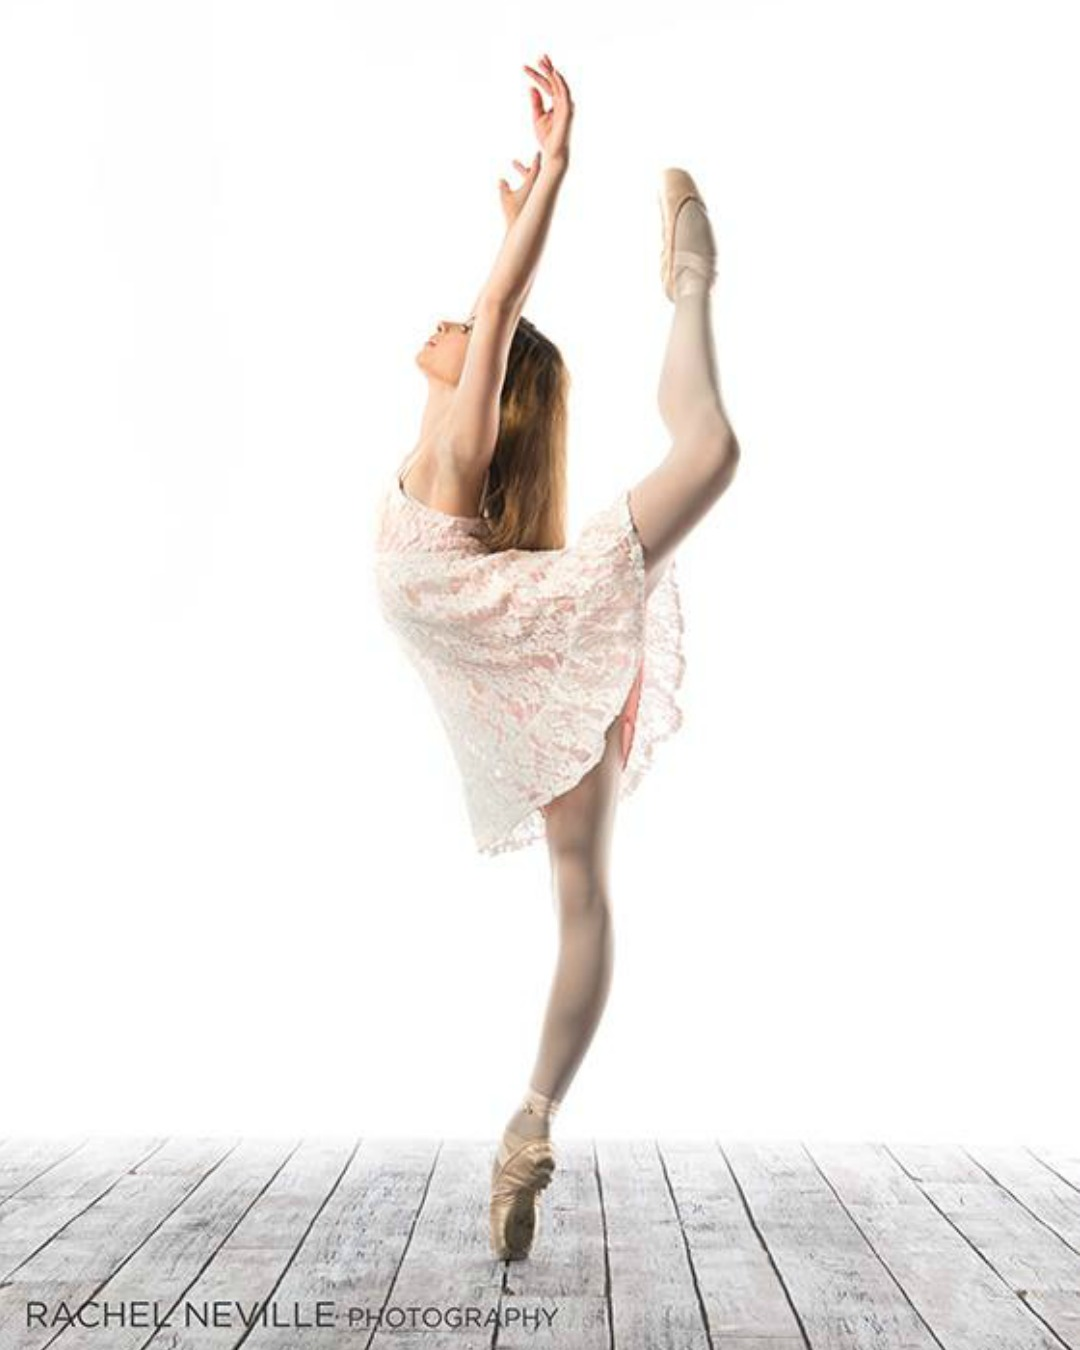 Ballerina-Juliette-Bosco-Ellison-Ballet-Photo-by-Rachel-Neville-Photography-wallpaper-wp423902-1